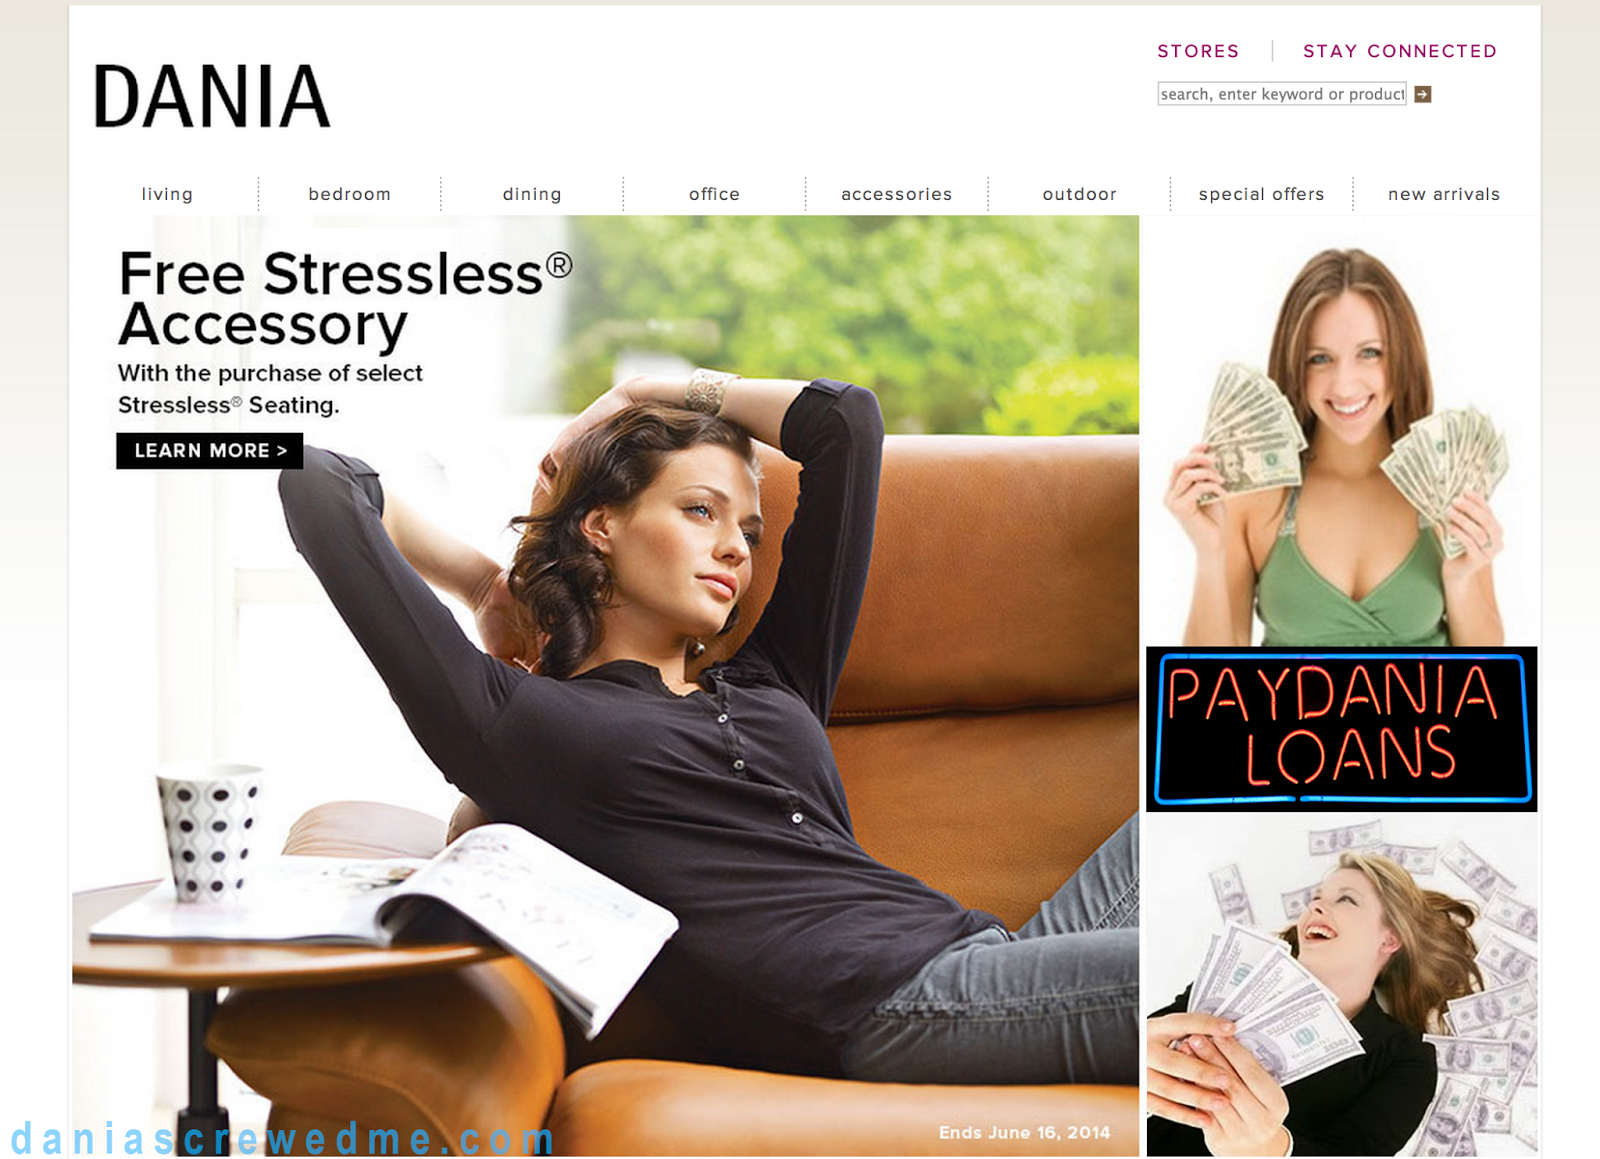 dania now offering payday loans